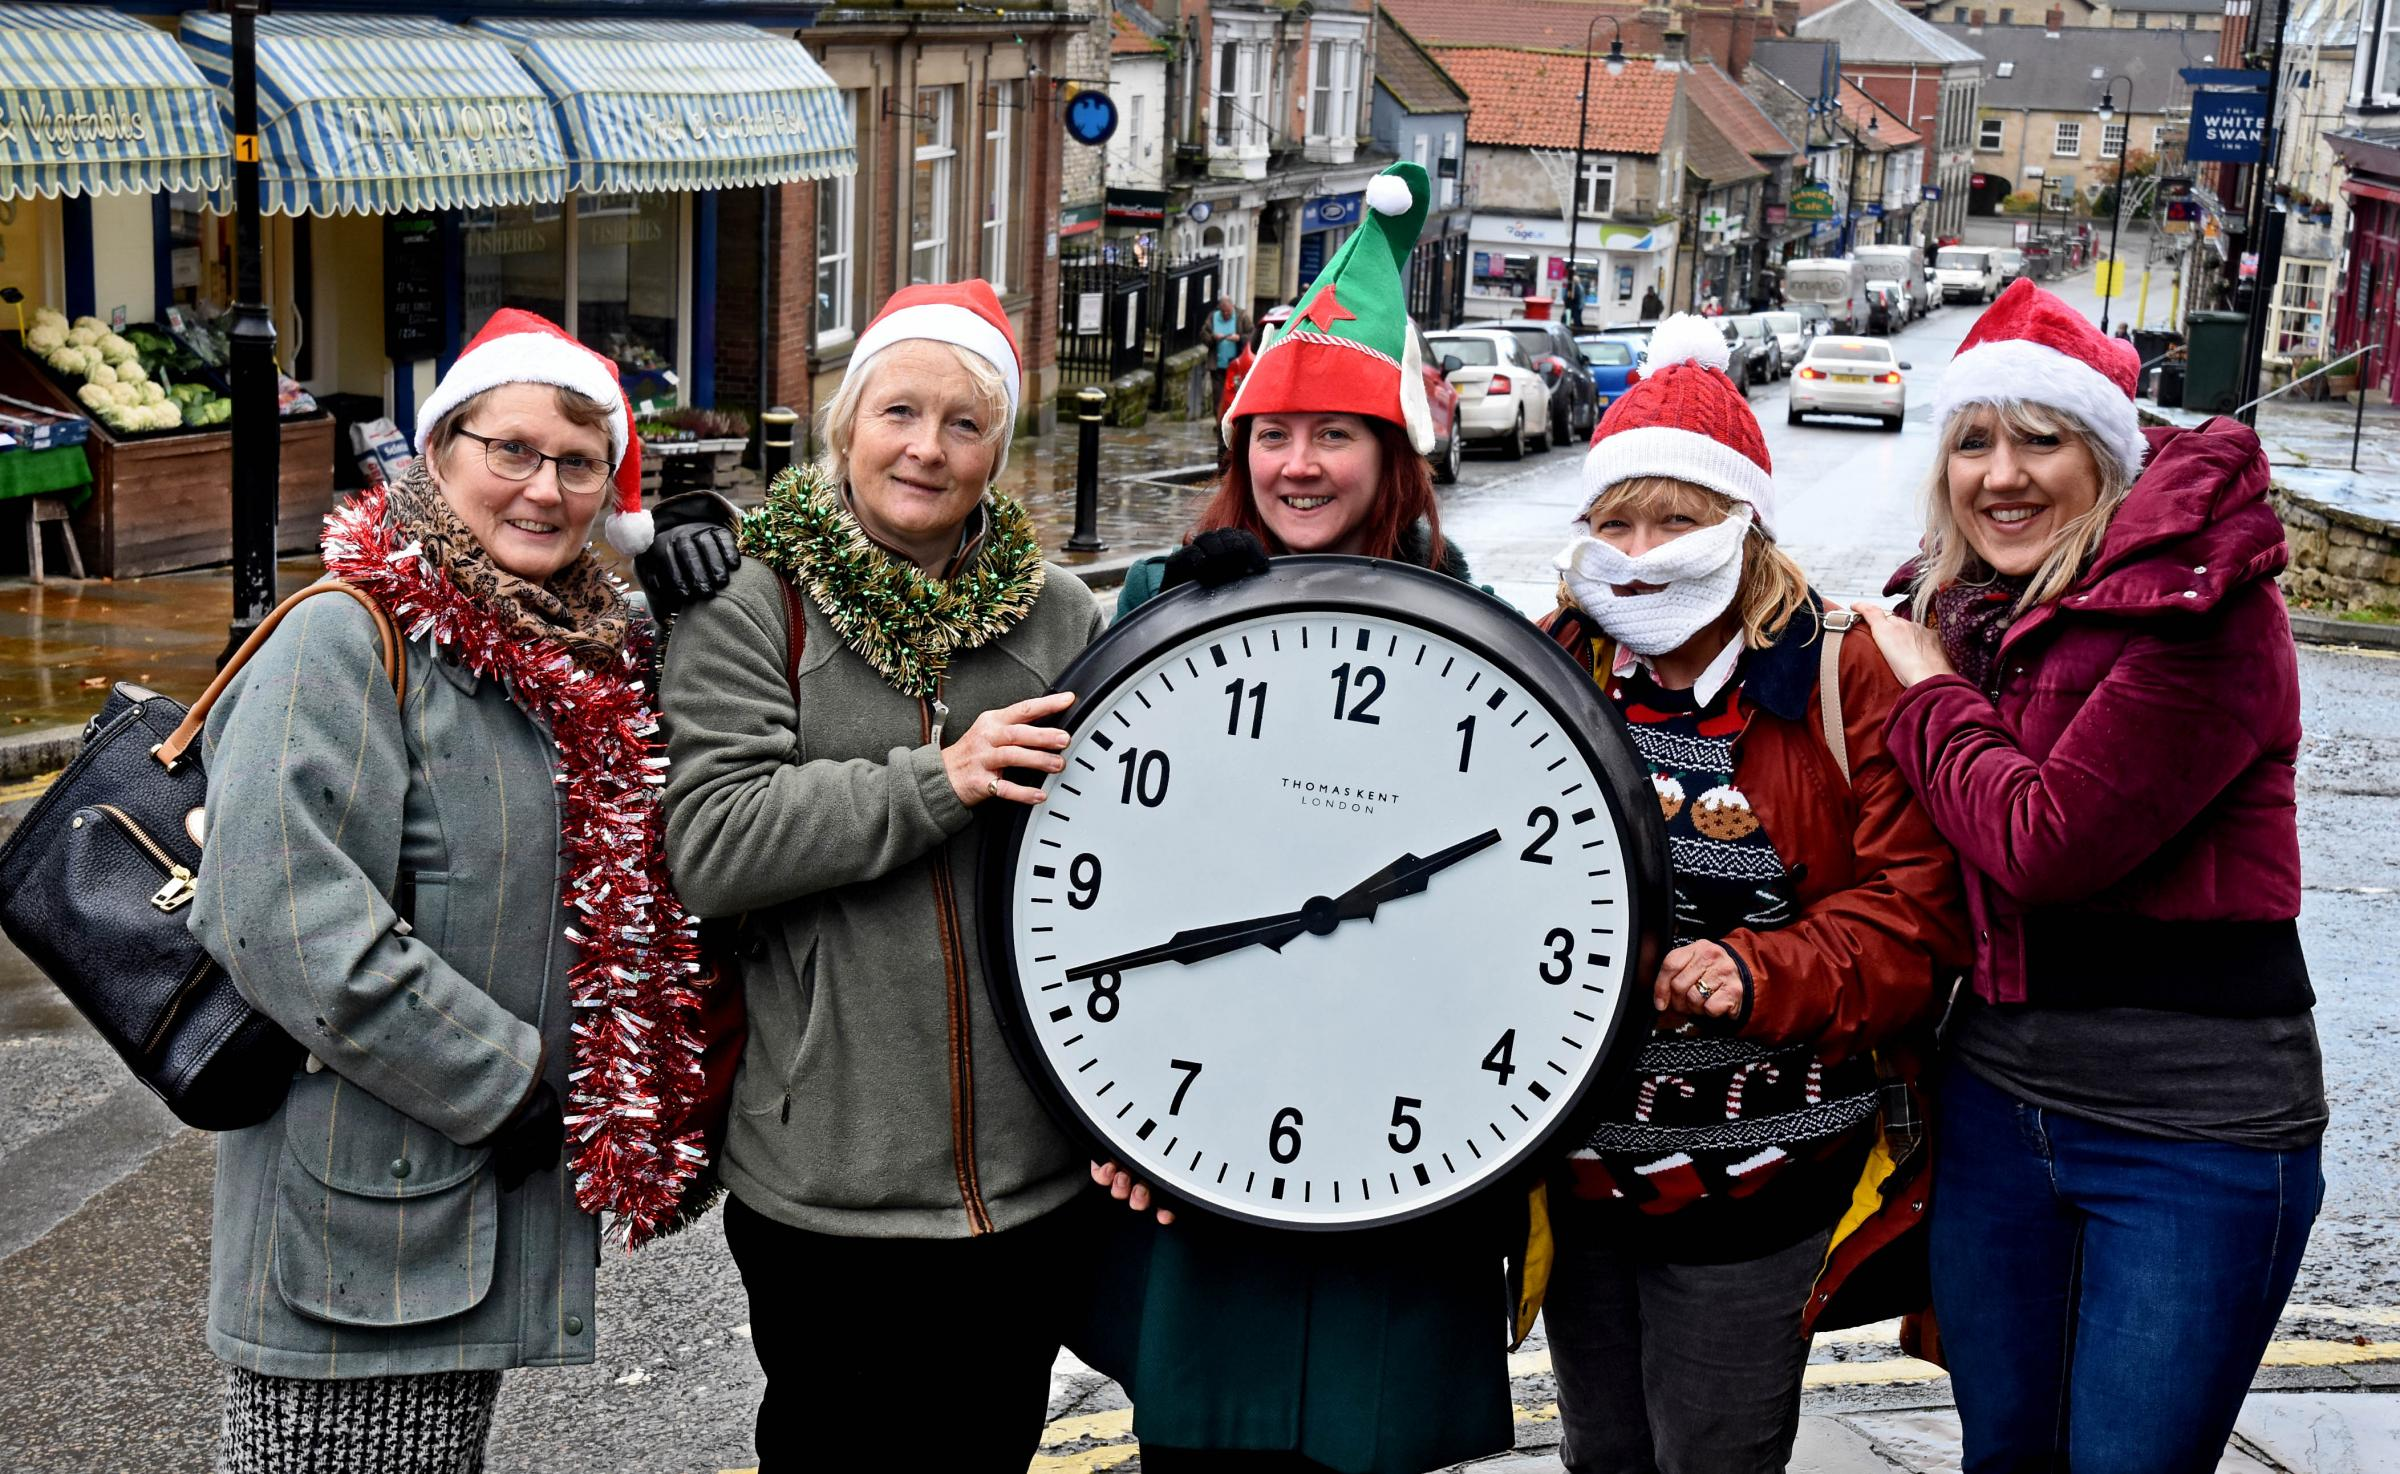 Give a Gift of Time Appeal fundraisers (left) Isabelle Harrison,Carol Stevens,Claire Hall,Gill Gibbeson (correct) and  Sarah Lalley-Marley at Pickering.Pic Nigel Holland